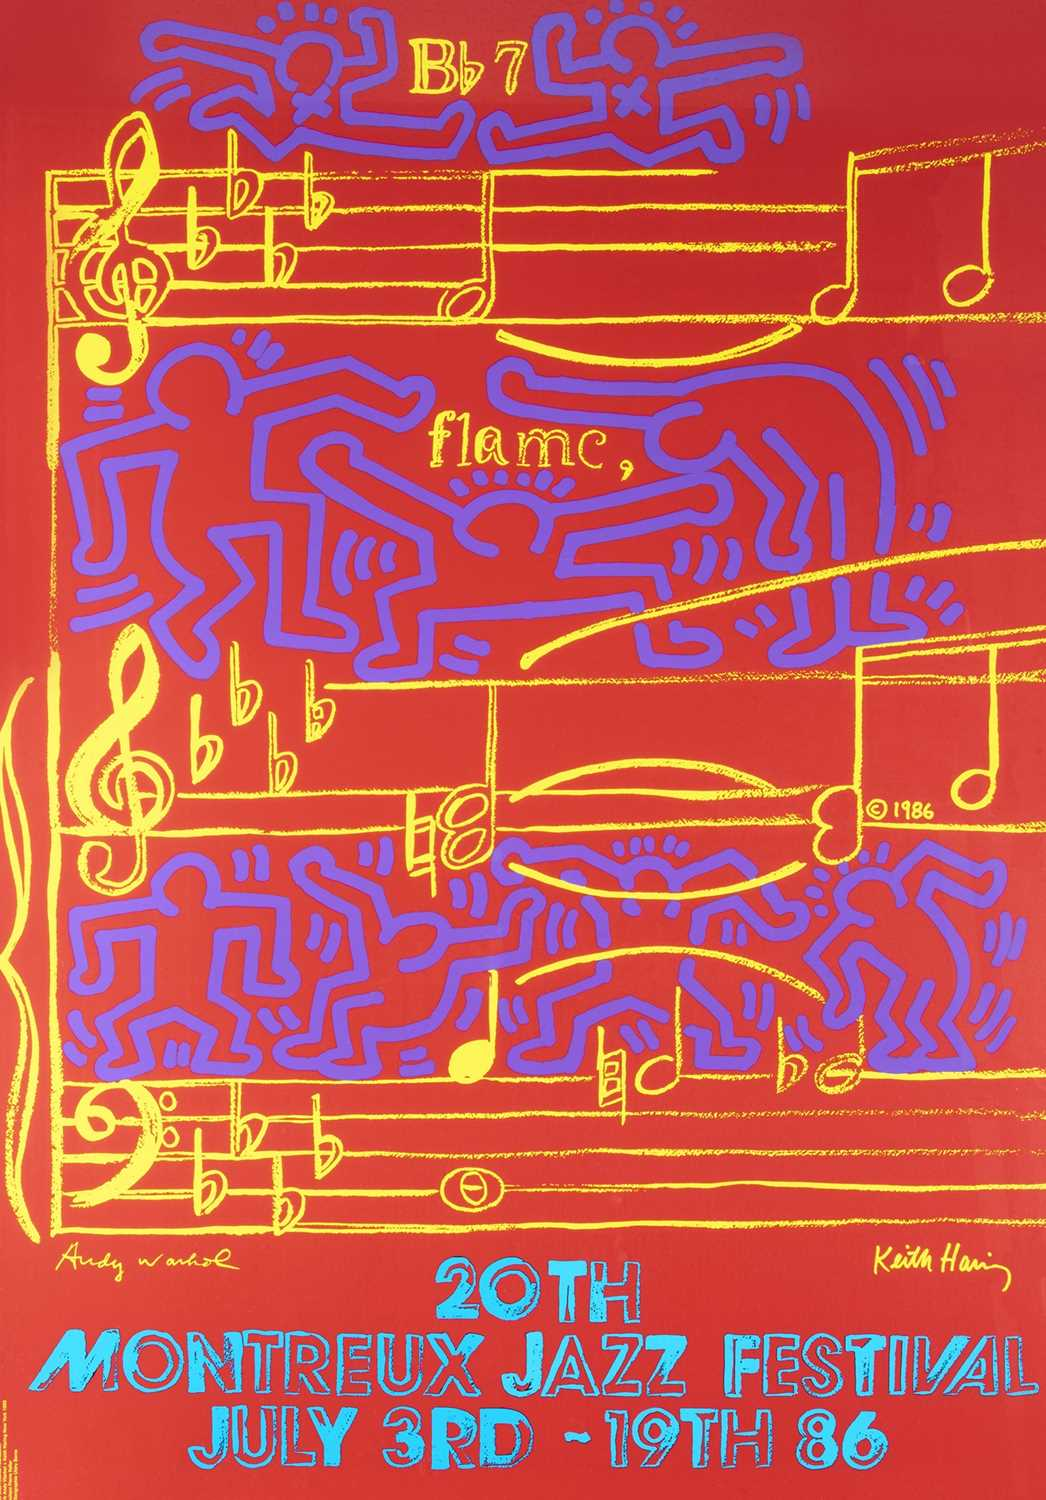 Lot 1-Andy Warhol & Keith Haring (Collaboration), 'Montreux Jazz Festival', 1986